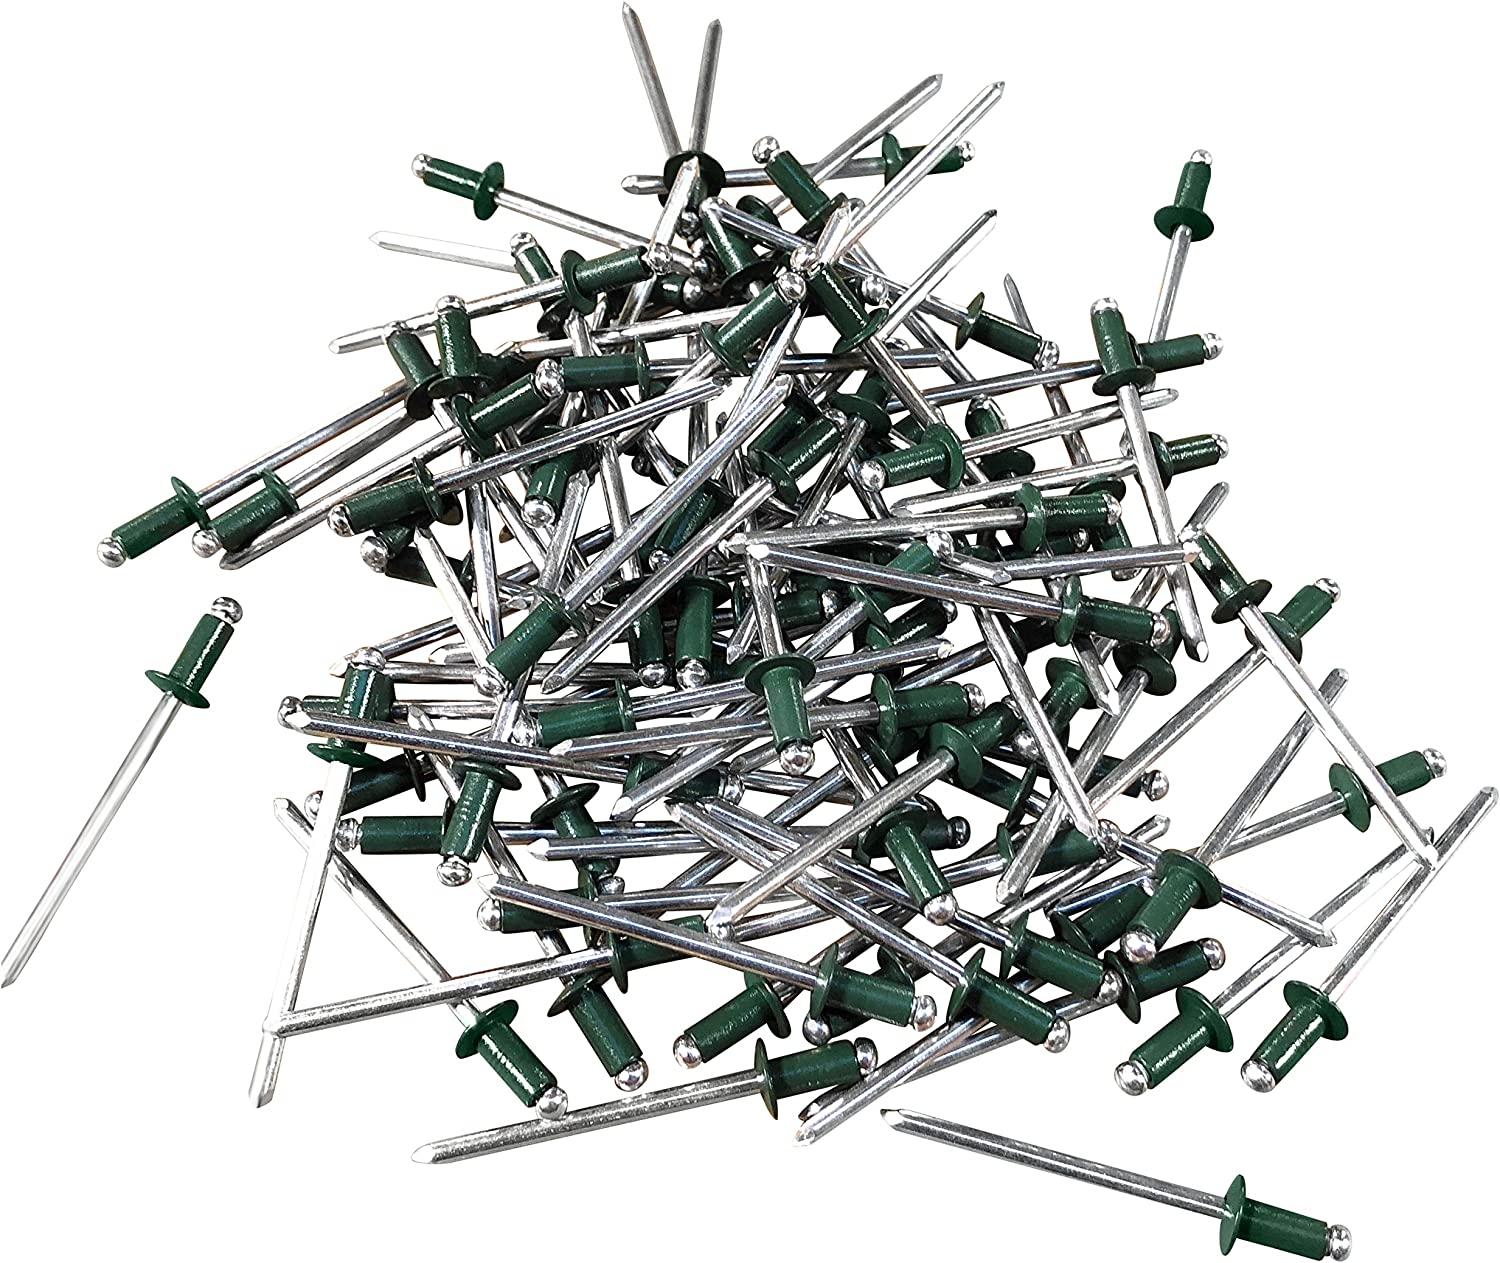 500 pcs, Green Eagle 1 Blind Aluminum Pop Rivets Many Colors With Free 1//8 drill bit included 1//8 x 1//4, 42 Gutter pop Rivets Blind Pop Rivets